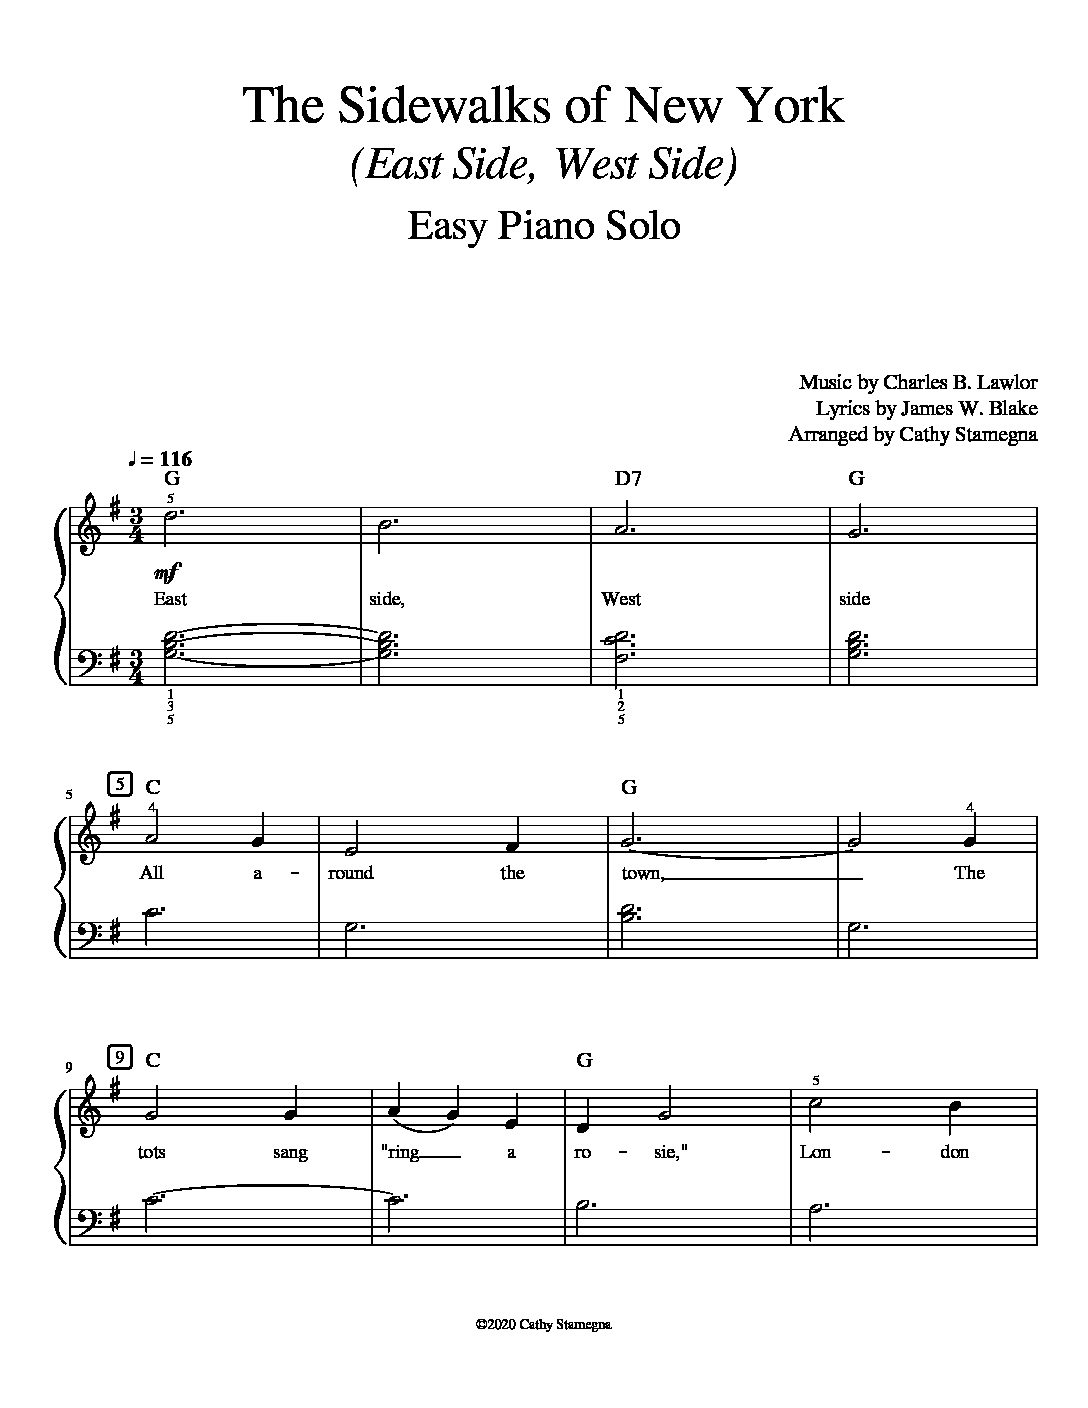 The Sidewalks of New York (East Side, West Side) (Easy Piano Solo)